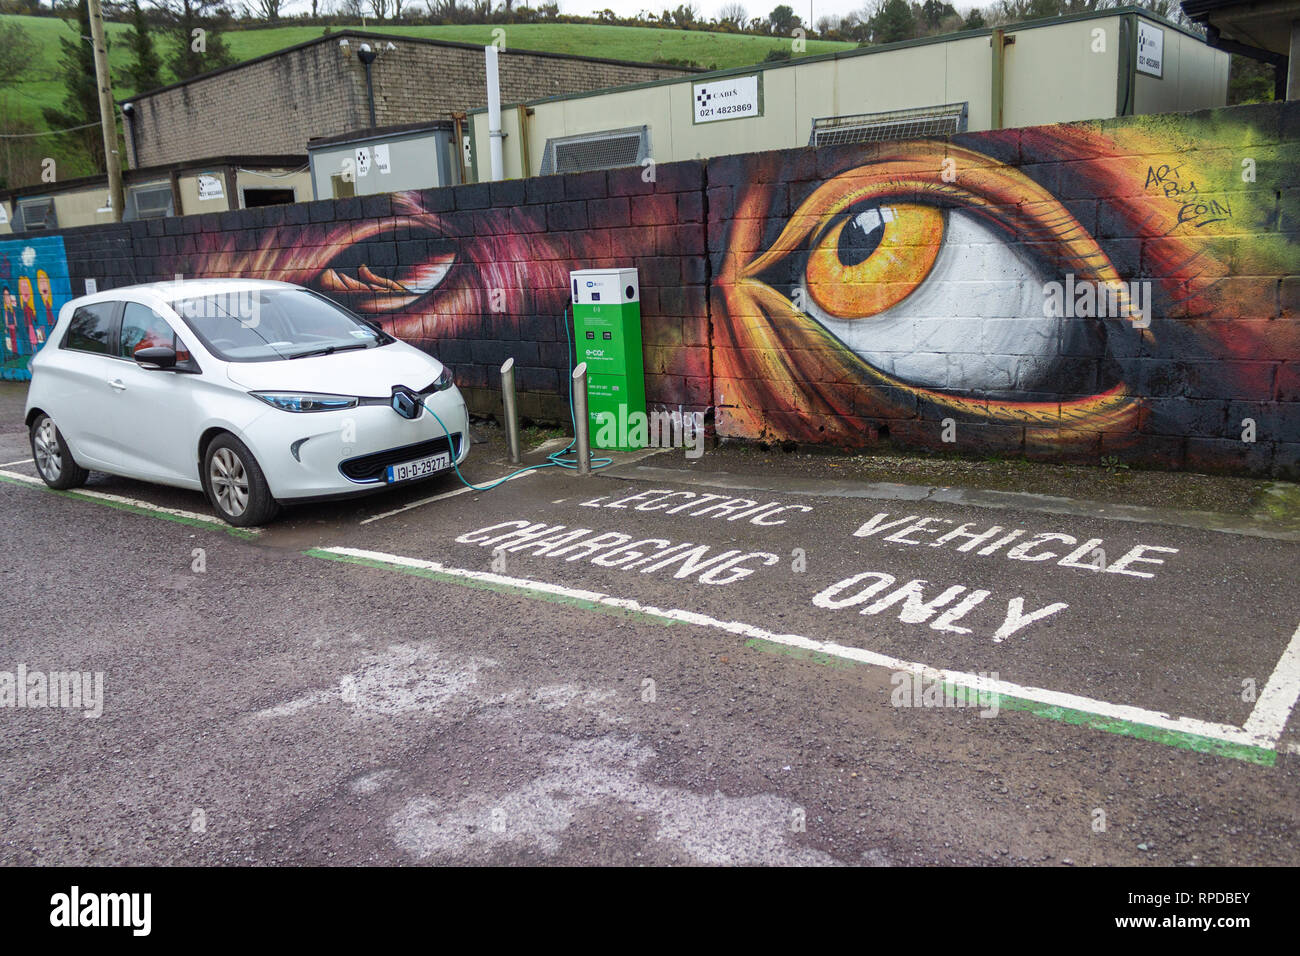 electric-car-being-charged-at-an-electric-car-charging-point-bantry-west-cork-ireland-RPDBEY.jpg